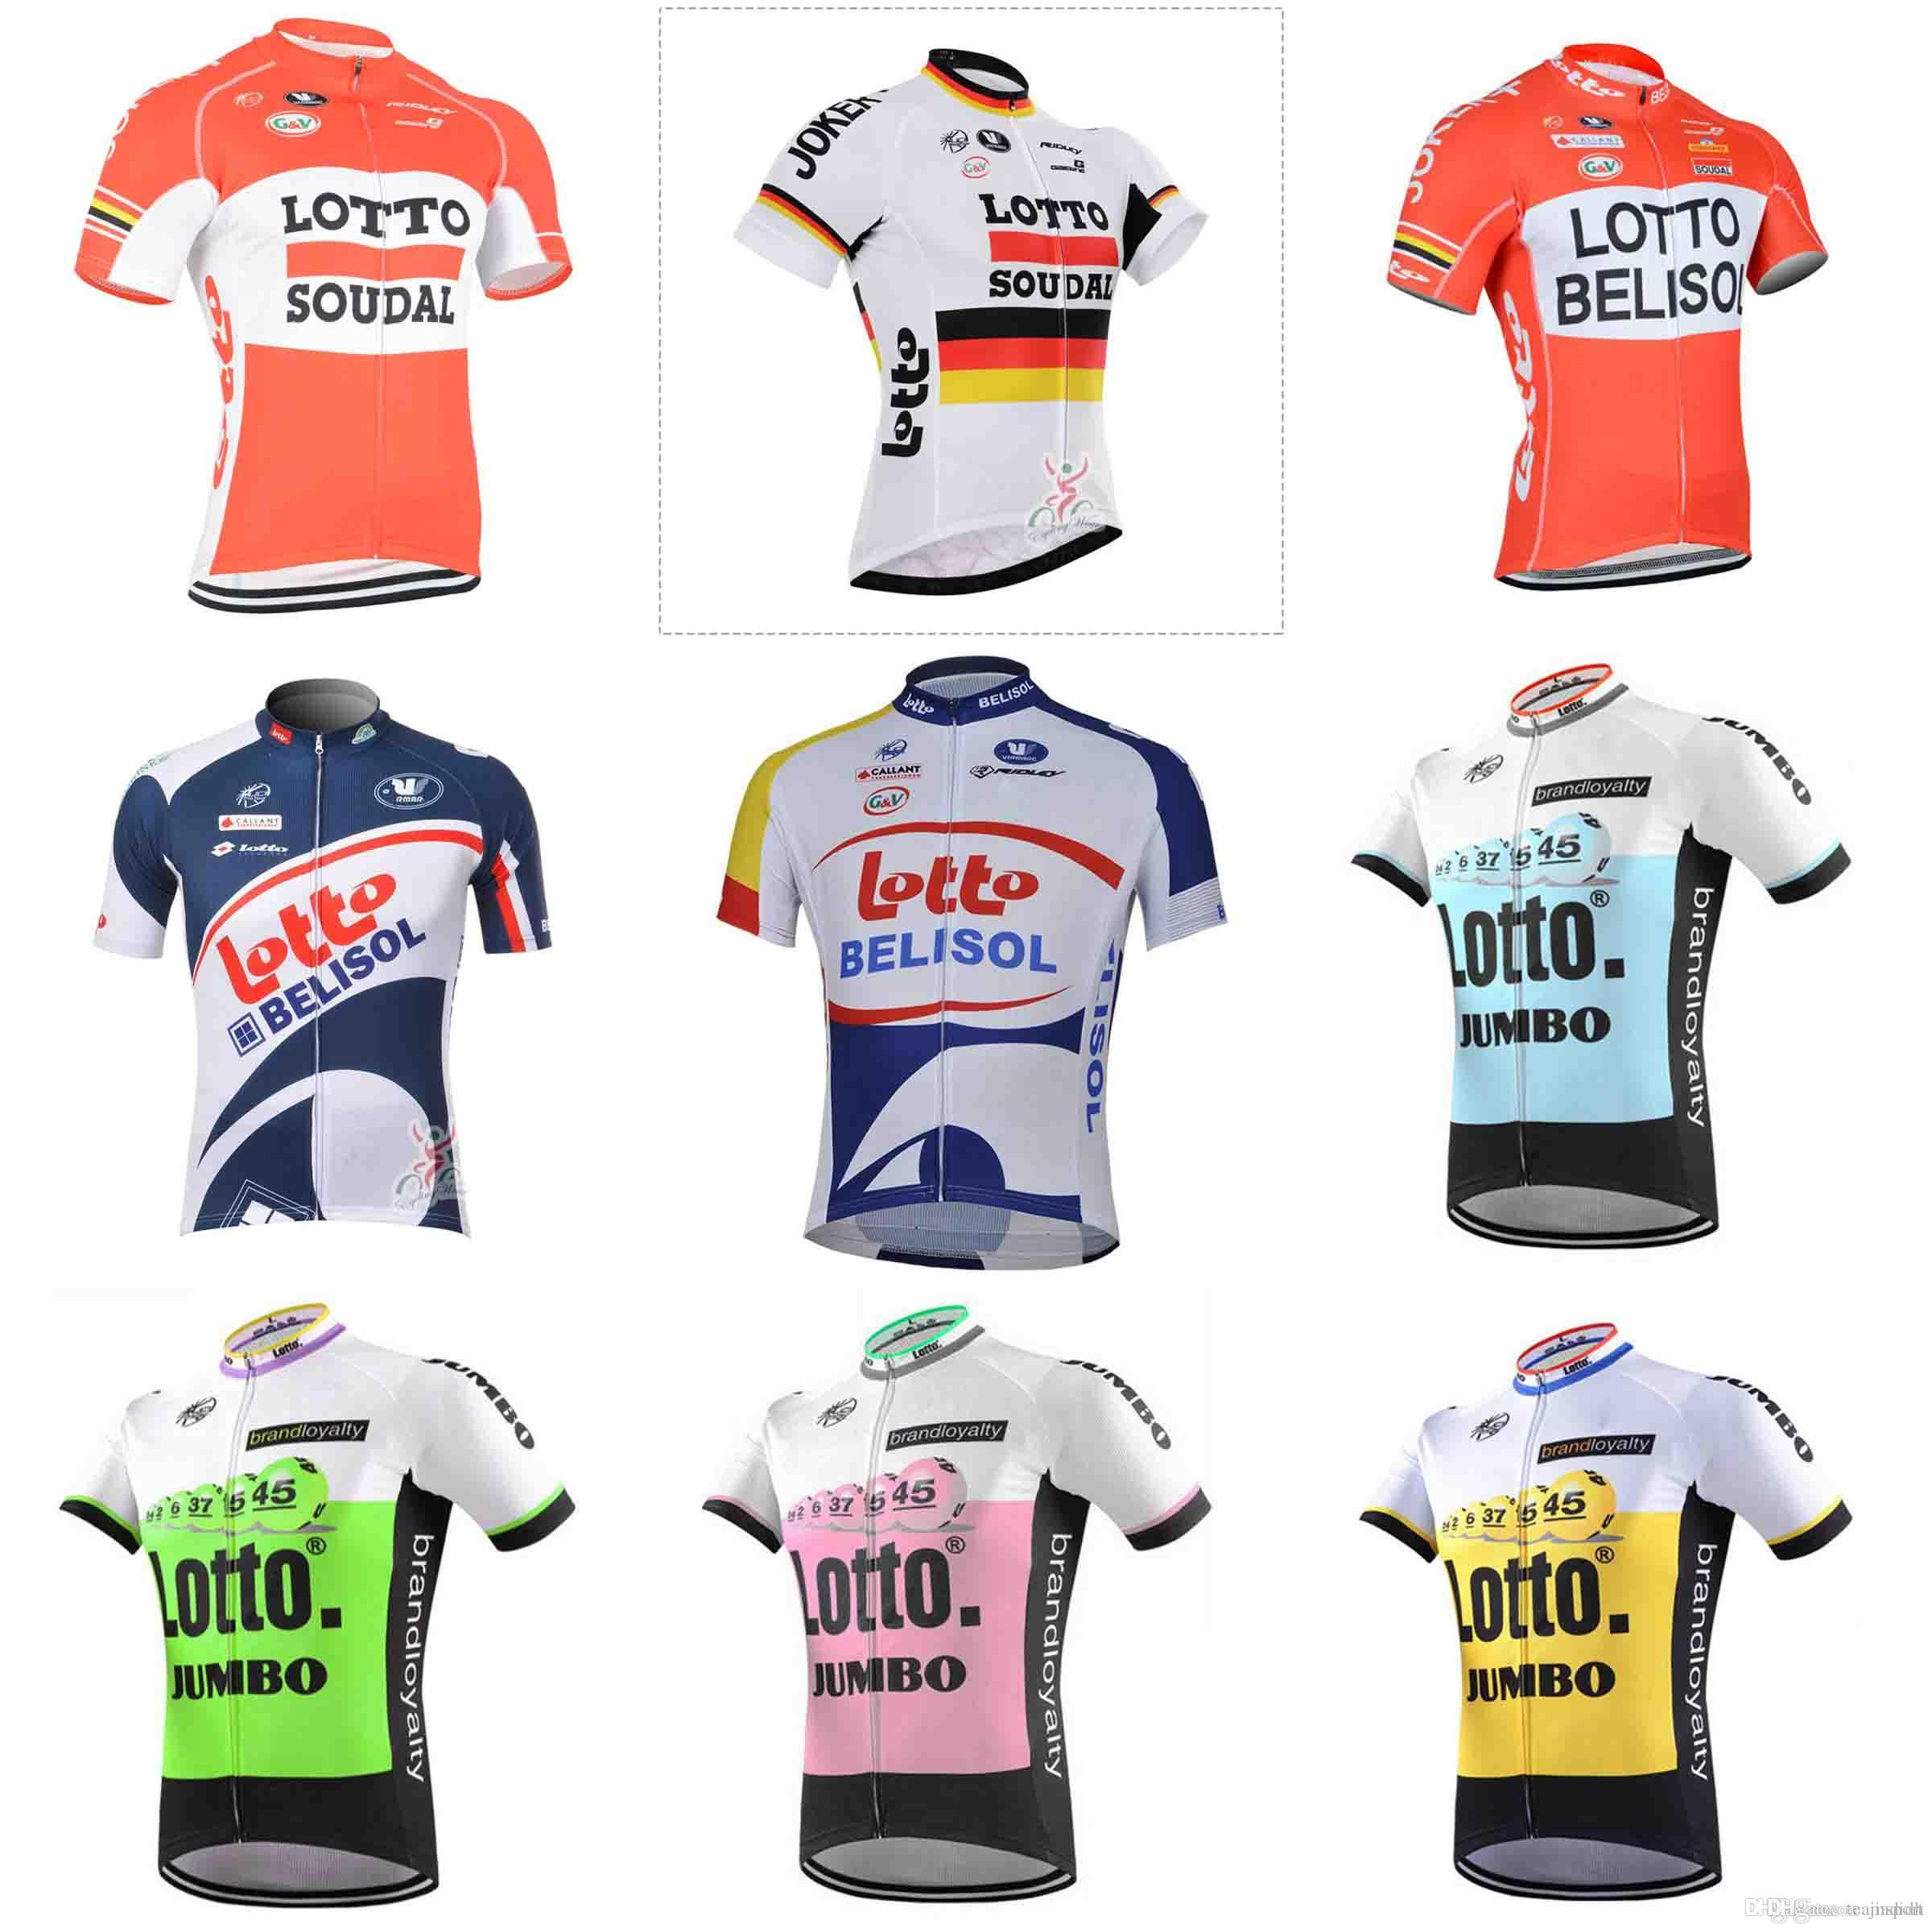 f63f5c7b2 LOTTO Team Cycling Jersey 2018 Summer Discount Cycling Jerseys Short Sleeve  100% Polyester Clothing Quick Dry Sportwear 840210 Womens Cycling Jerseys  Best ...